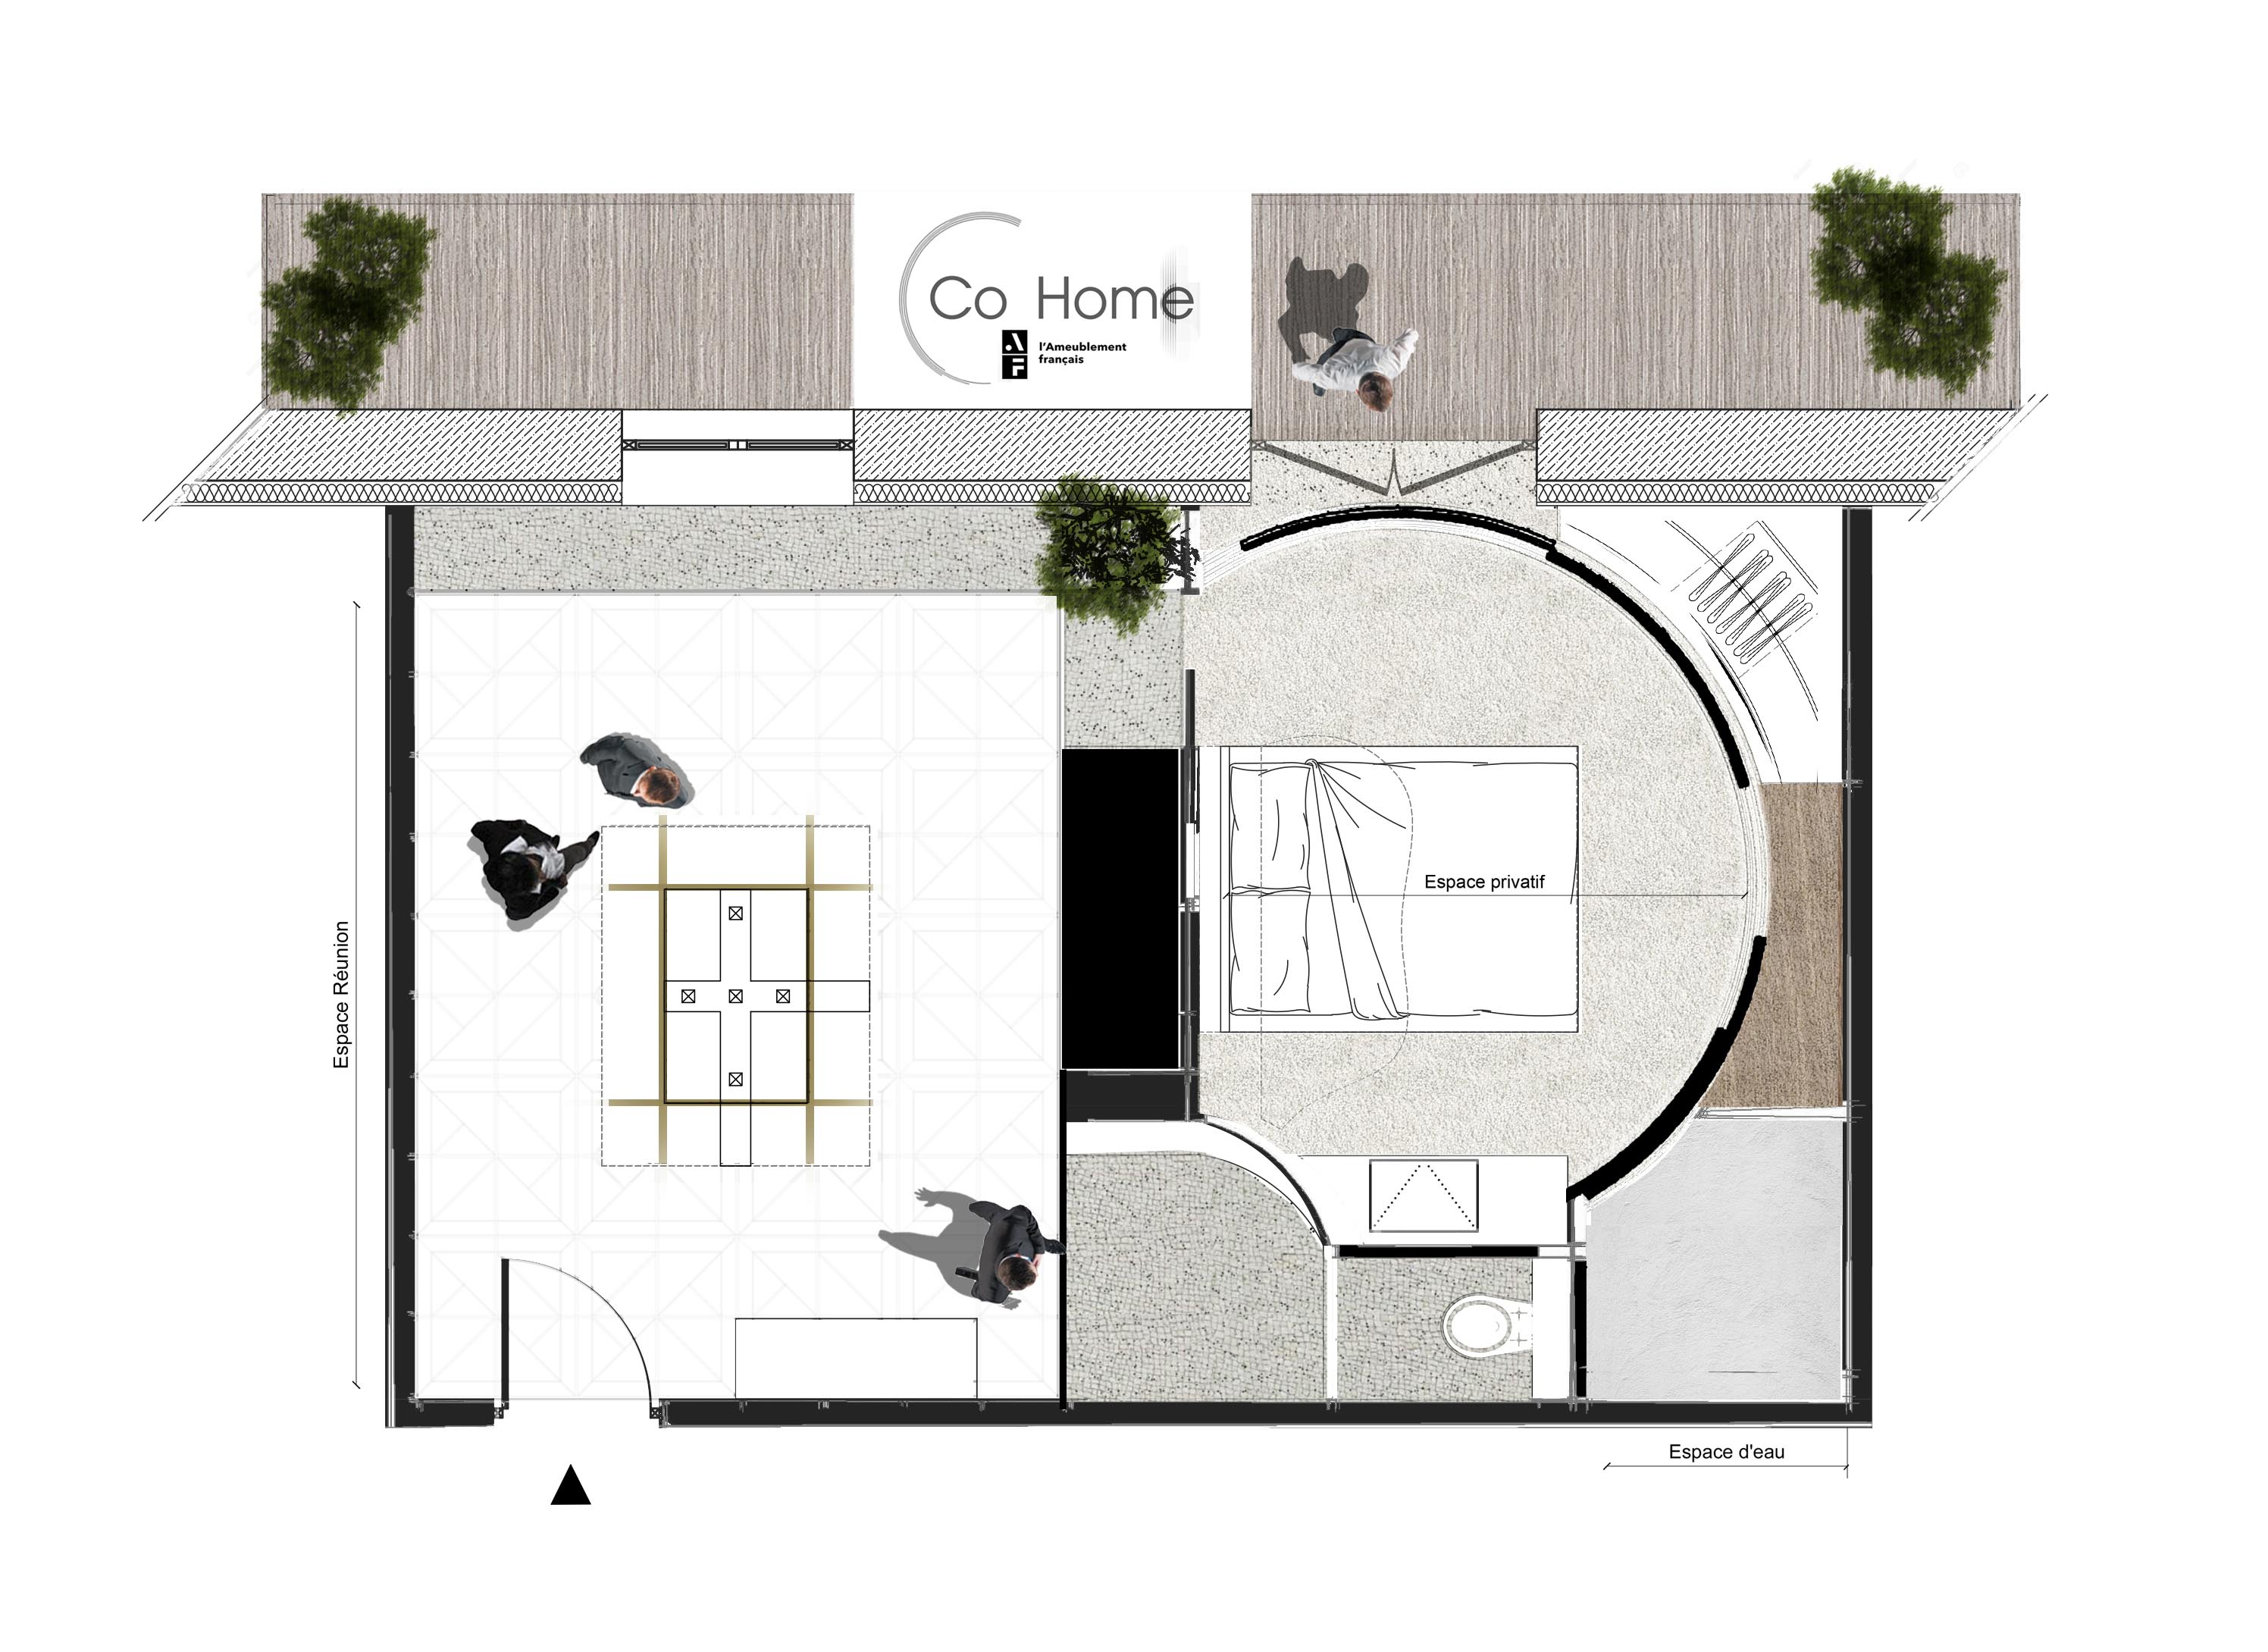 Co Home plan